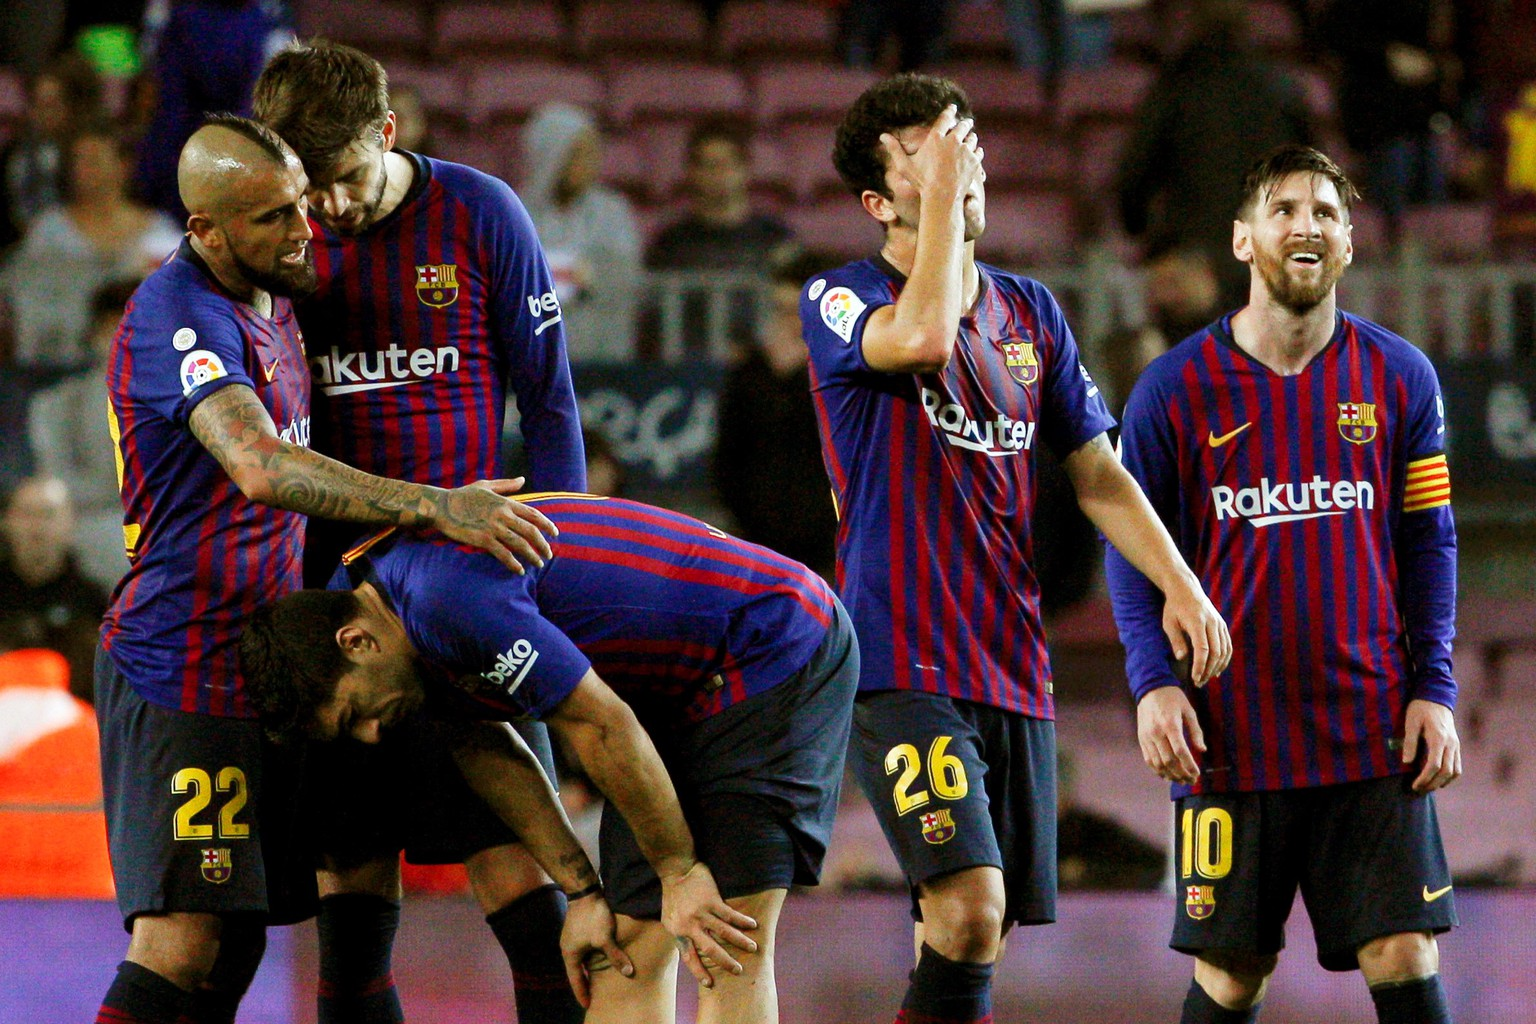 epa07159449 FC Barcelona players (L-R) Arturo Vidal, Gerard Pique, Luis Suarez, Carles Alena, and Lionel Messi show their dejection after the Spanish La Liga soccer match between FC Barcelona and Real Betis in Barcelona, Spain, 11 November 2018.  EPA/QUIQUE GARCIA